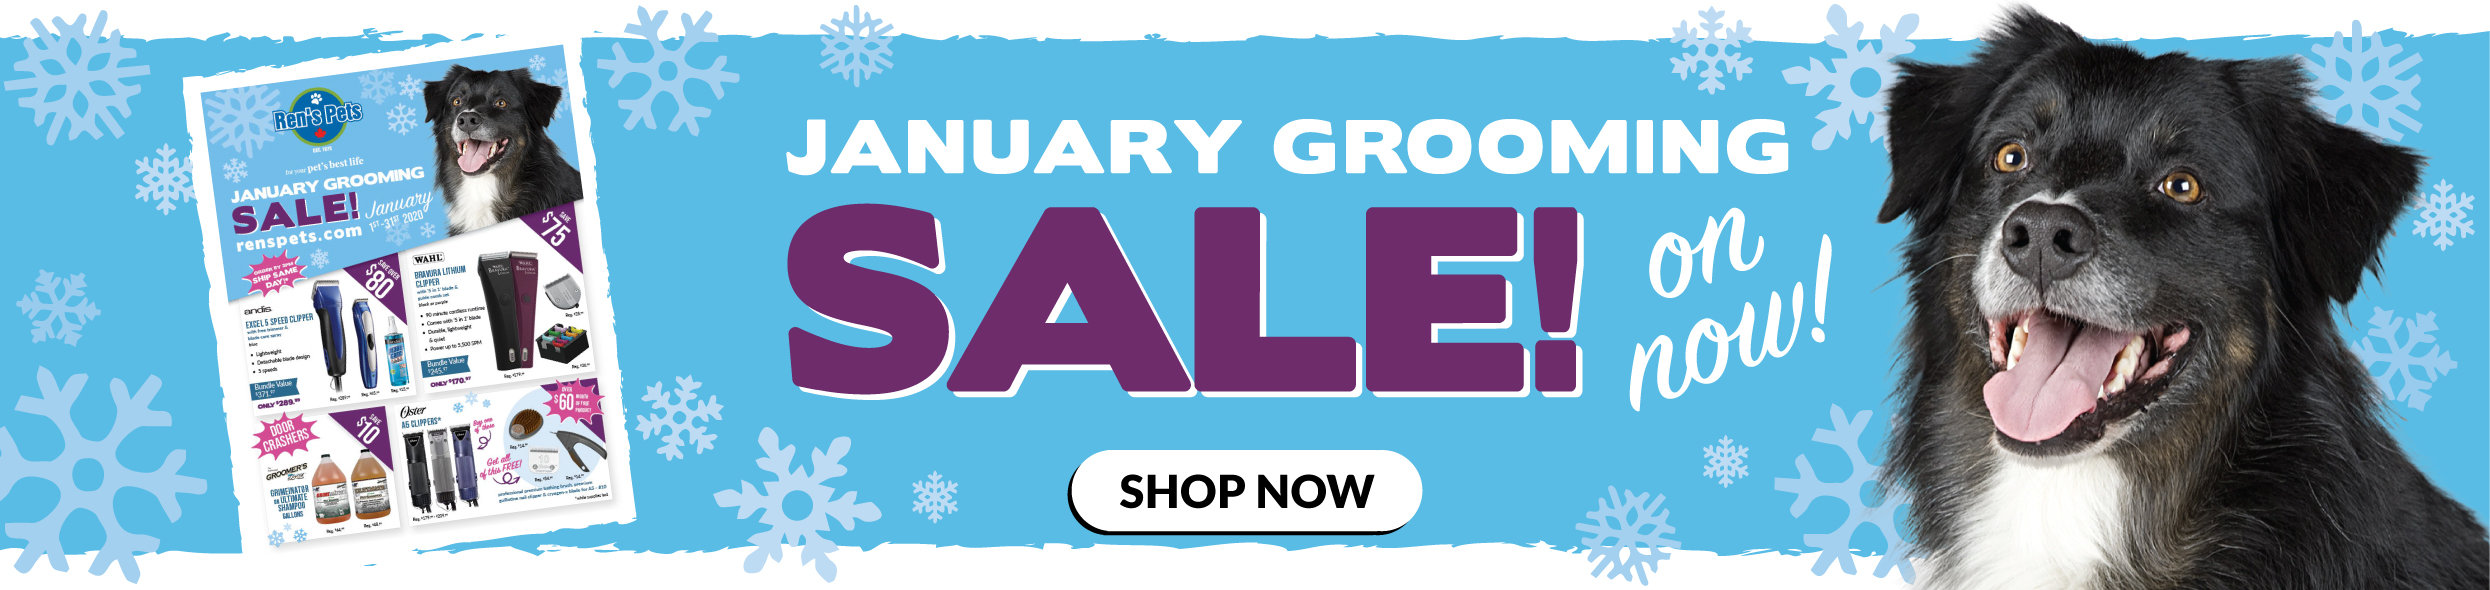 January Grooming Sale